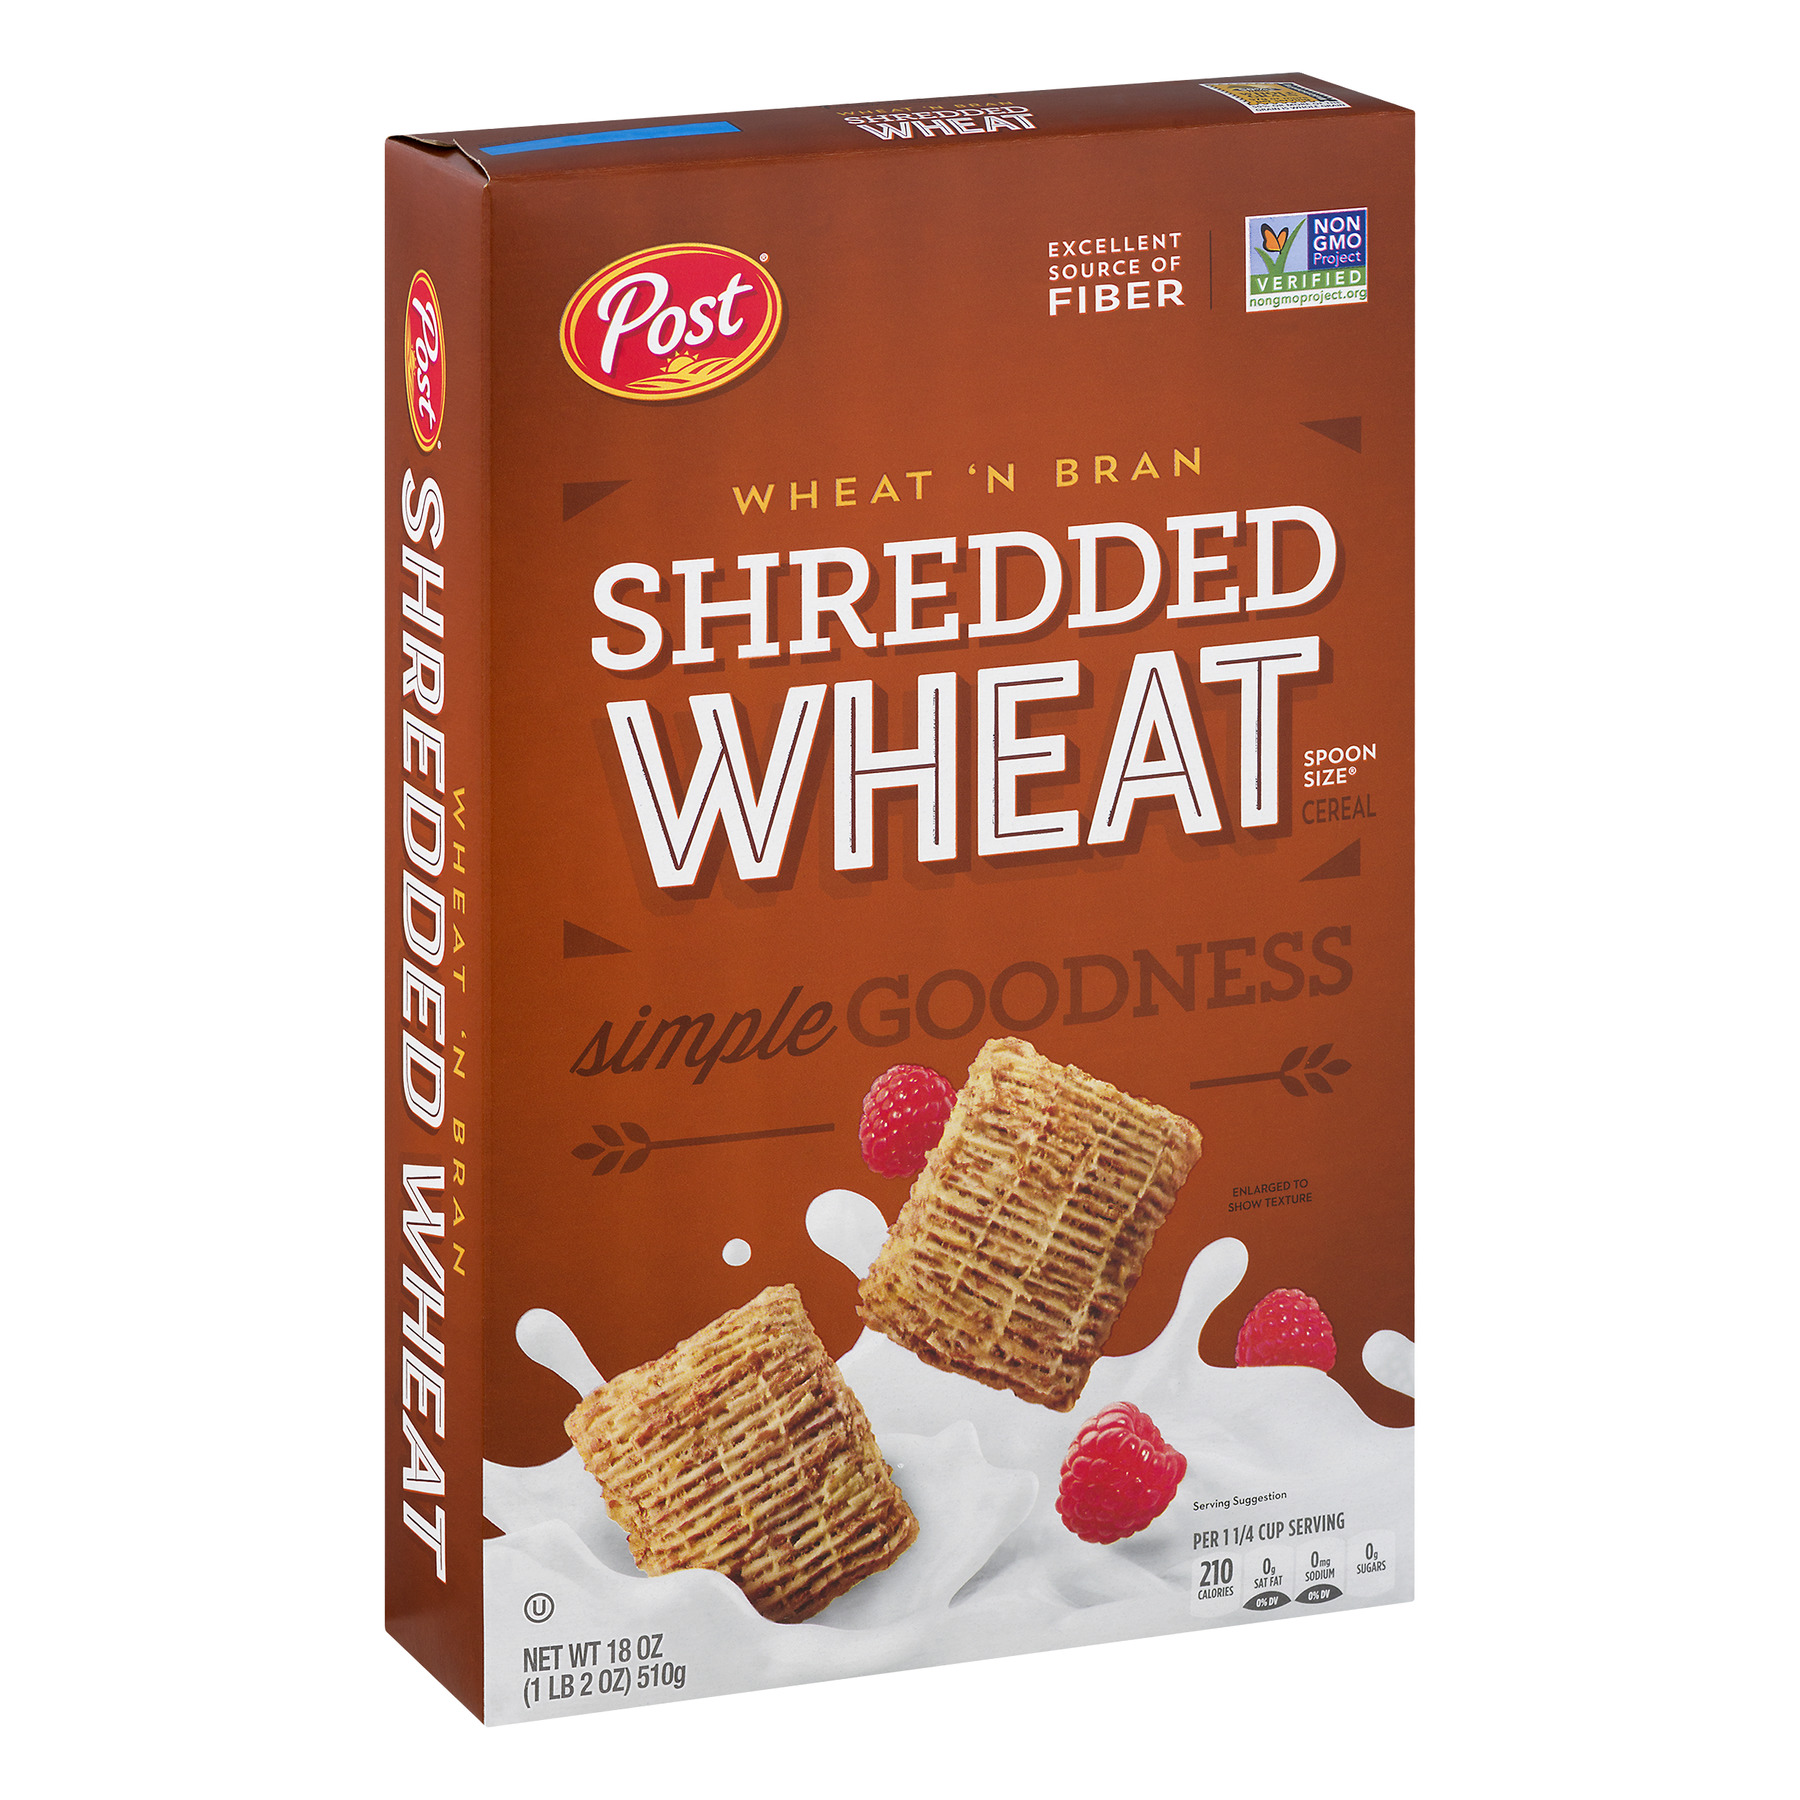 Post Shredded Wheat Wheat'n Bran Breakfast Cereal 18 oz Box